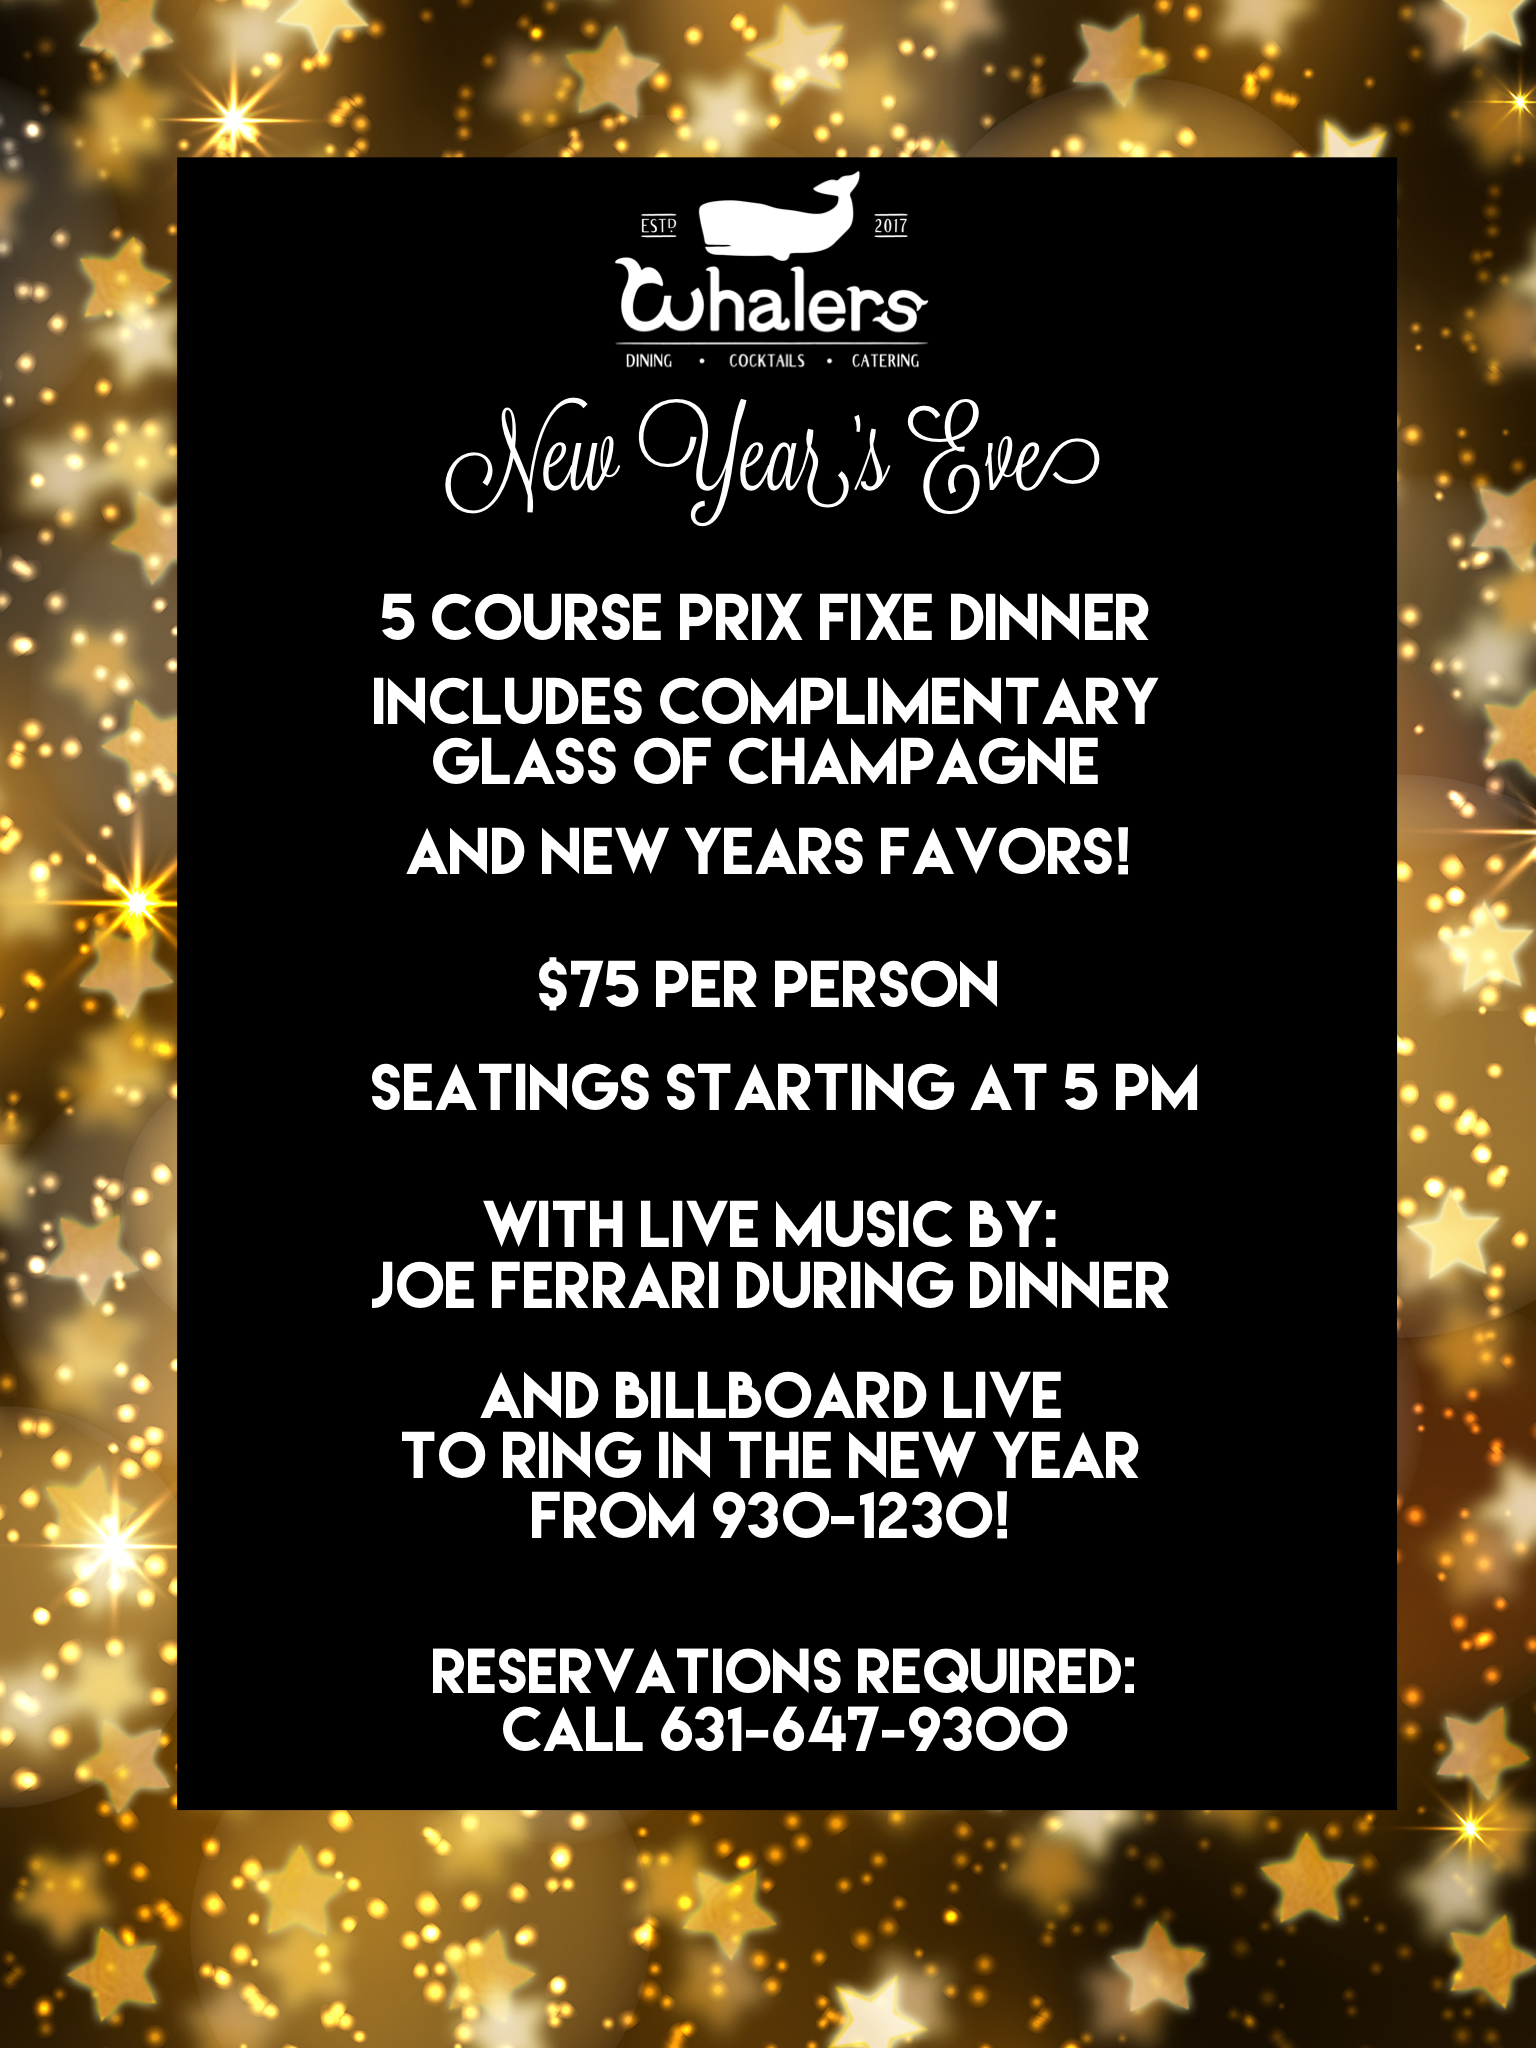 5 course prix fixe dinner  Includes complimentary glass of champagne for 21+  Includes complimentary new years favors  Music: Joe Ferrari during dinner and then Billboard Live at 930-1230 to ring in the new year  Click Image above for menu!  Credit card required to hold reservations. Must cancel by 12/28 at 6 pm otherwise you will be charged full price of the event per person booked.    If you want to see the band only-$20 at the door includes a glass of champagne and a new years favor!